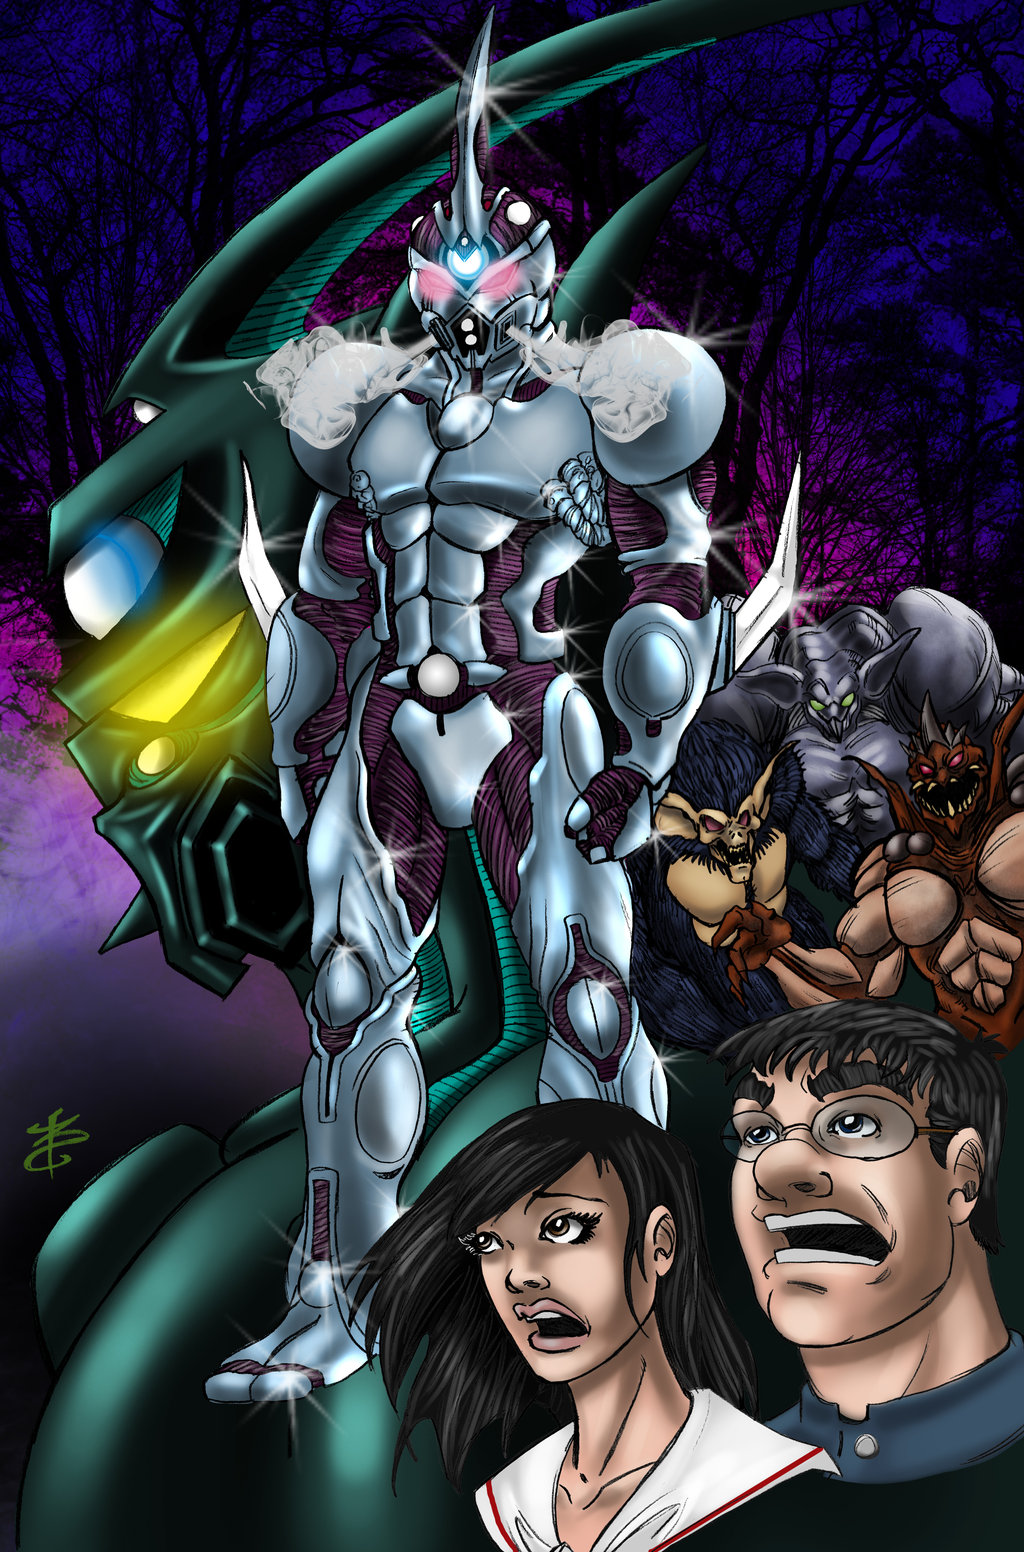 Guyver The Bioboosted Armor Backgrounds, Compatible - PC, Mobile, Gadgets| 1024x1552 px